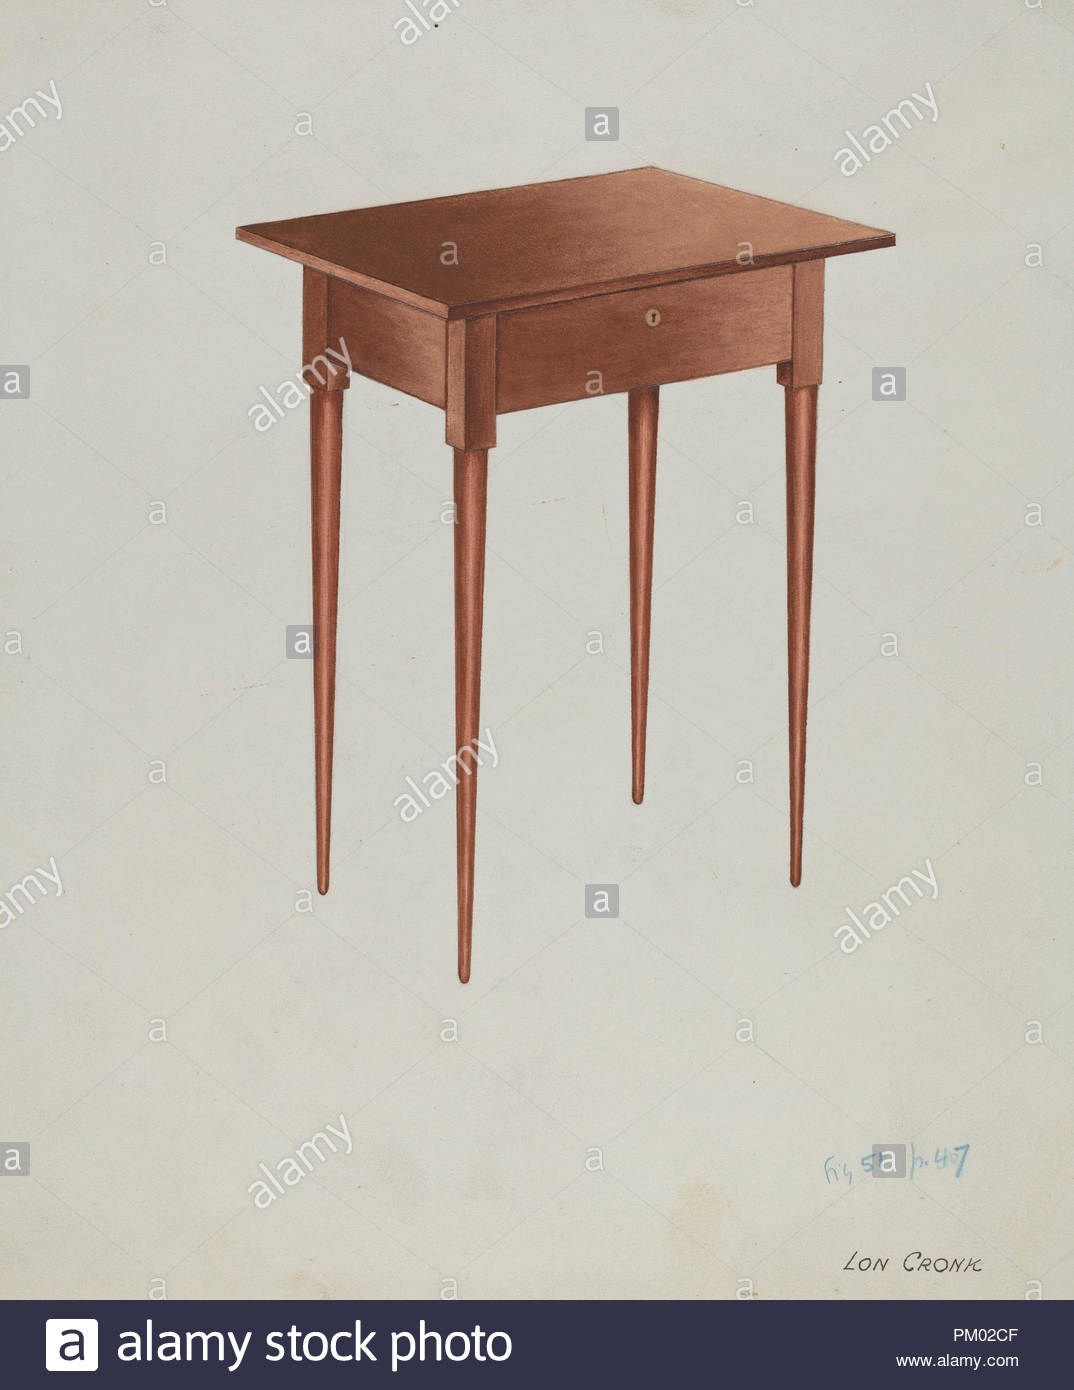 shaker candle table dated dimensions overall original iad object high wide deep medium watercolor and graphite paper museum national gallery art author lon cronk end ashley